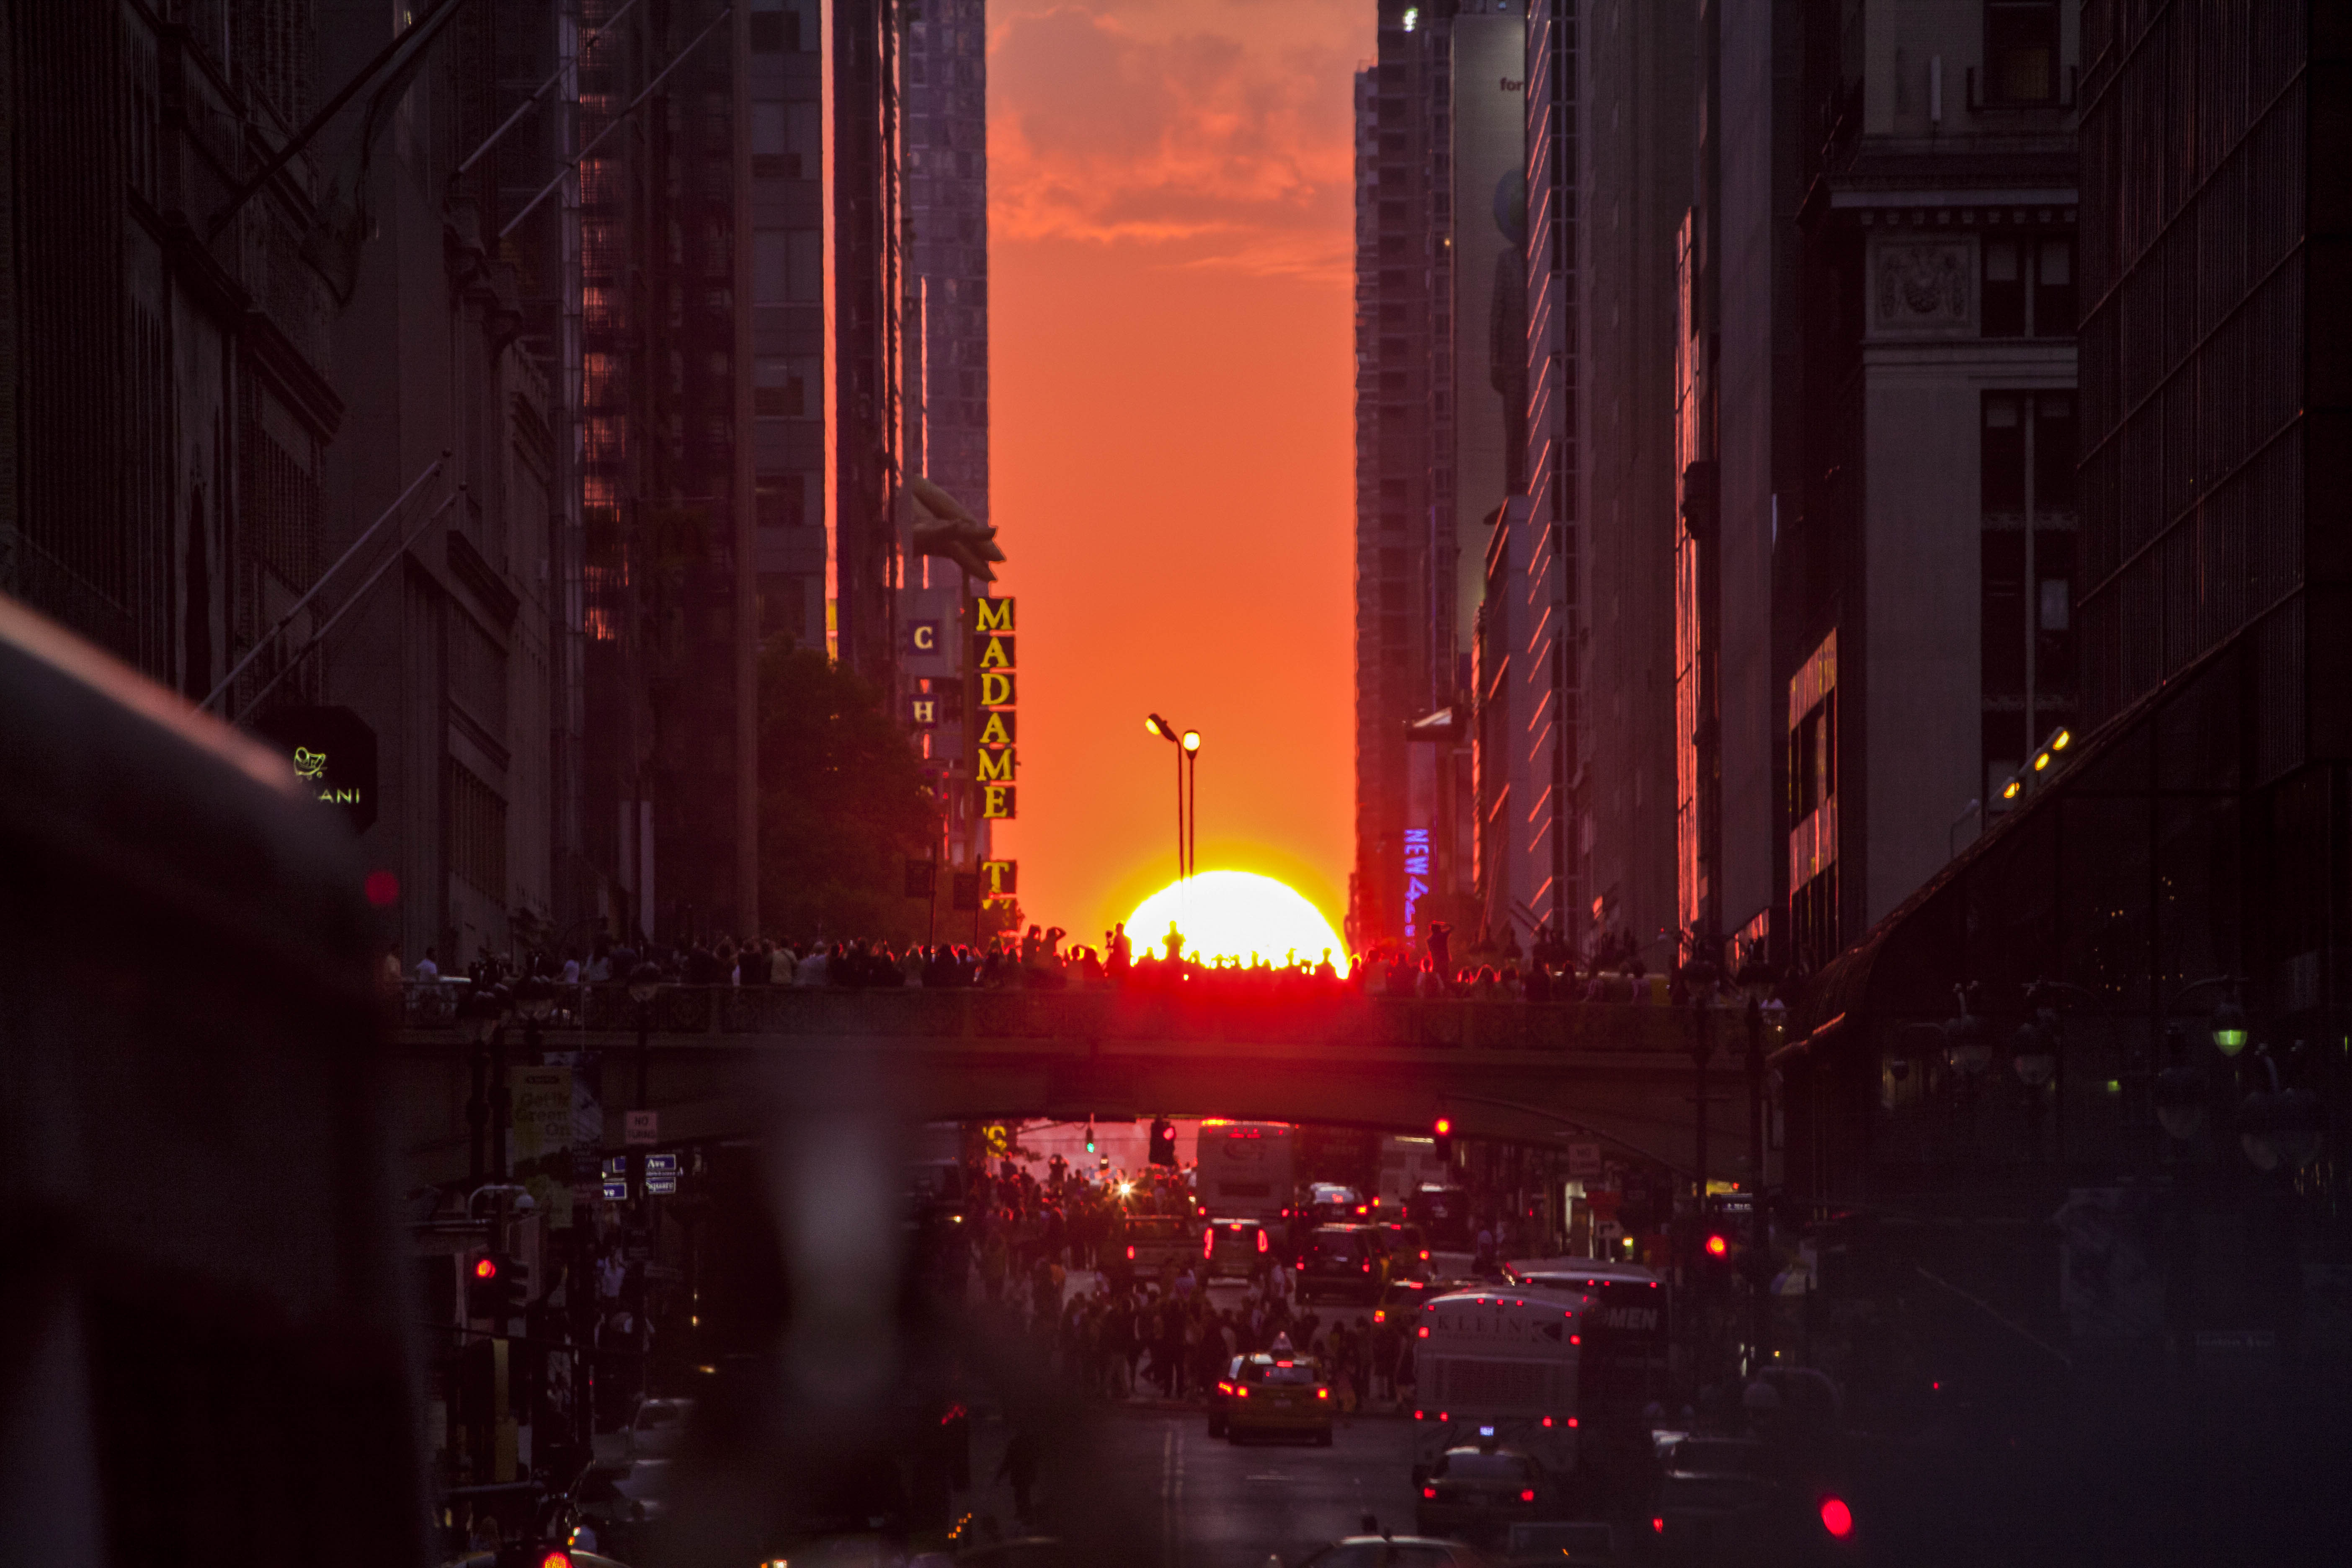 Manhattanhenge is a circumstance which occurs twice a year shutterstock_205045615 EDITORIAL ONLY JaysonPhotography-2